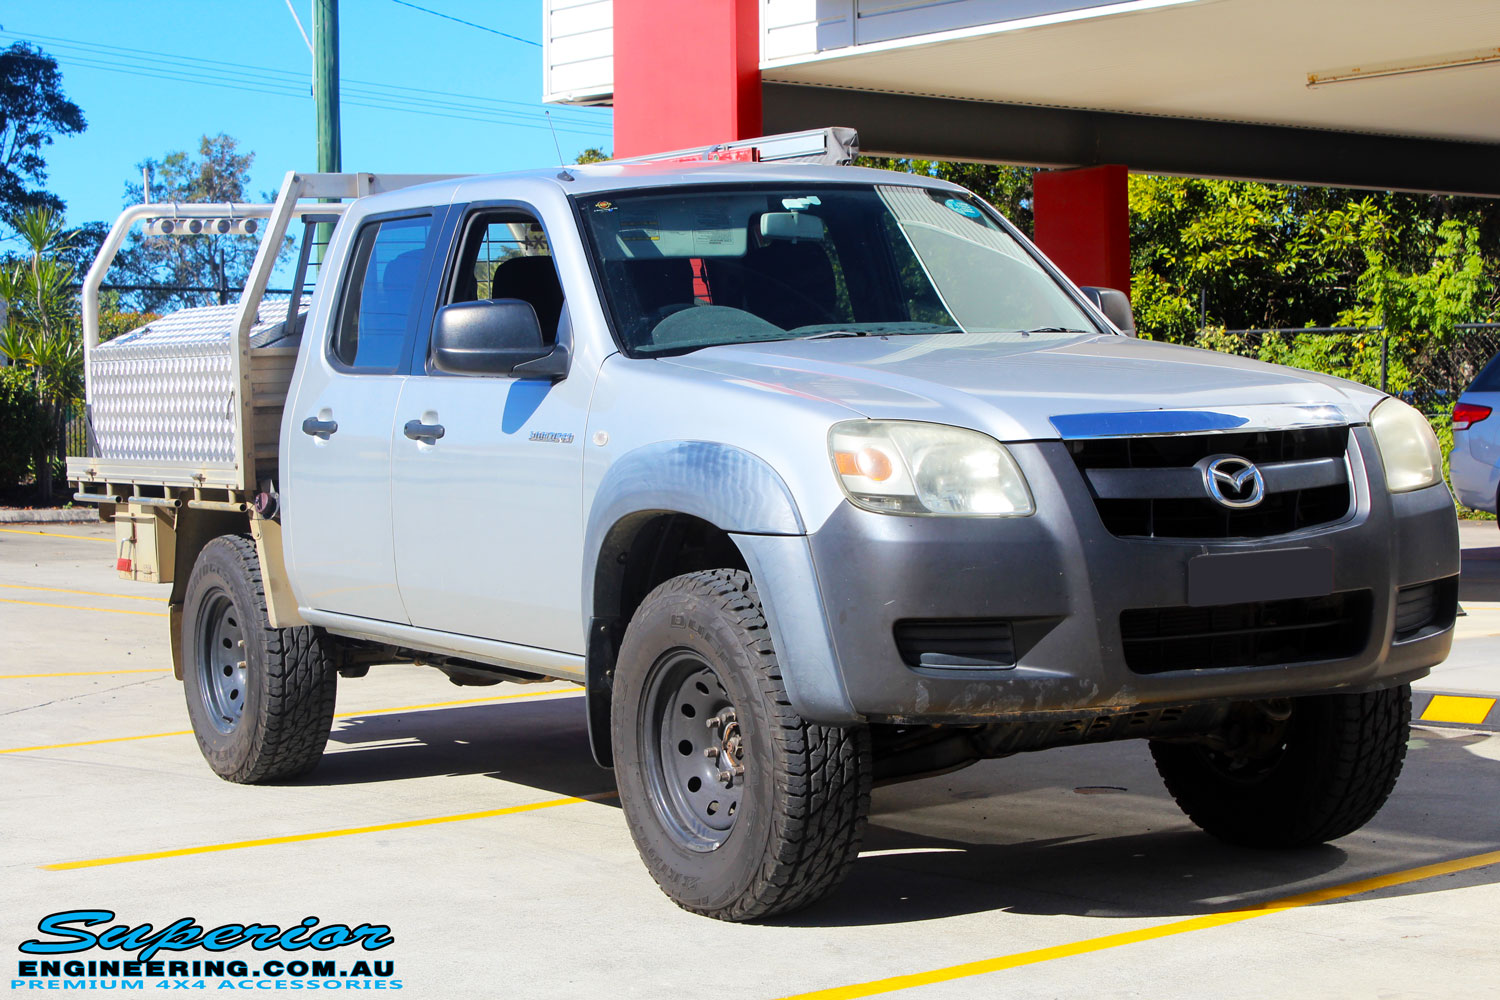 Right front side view of a Silver Mazda BT50 Dual Cab after fitment of a 35mm Lift Kit